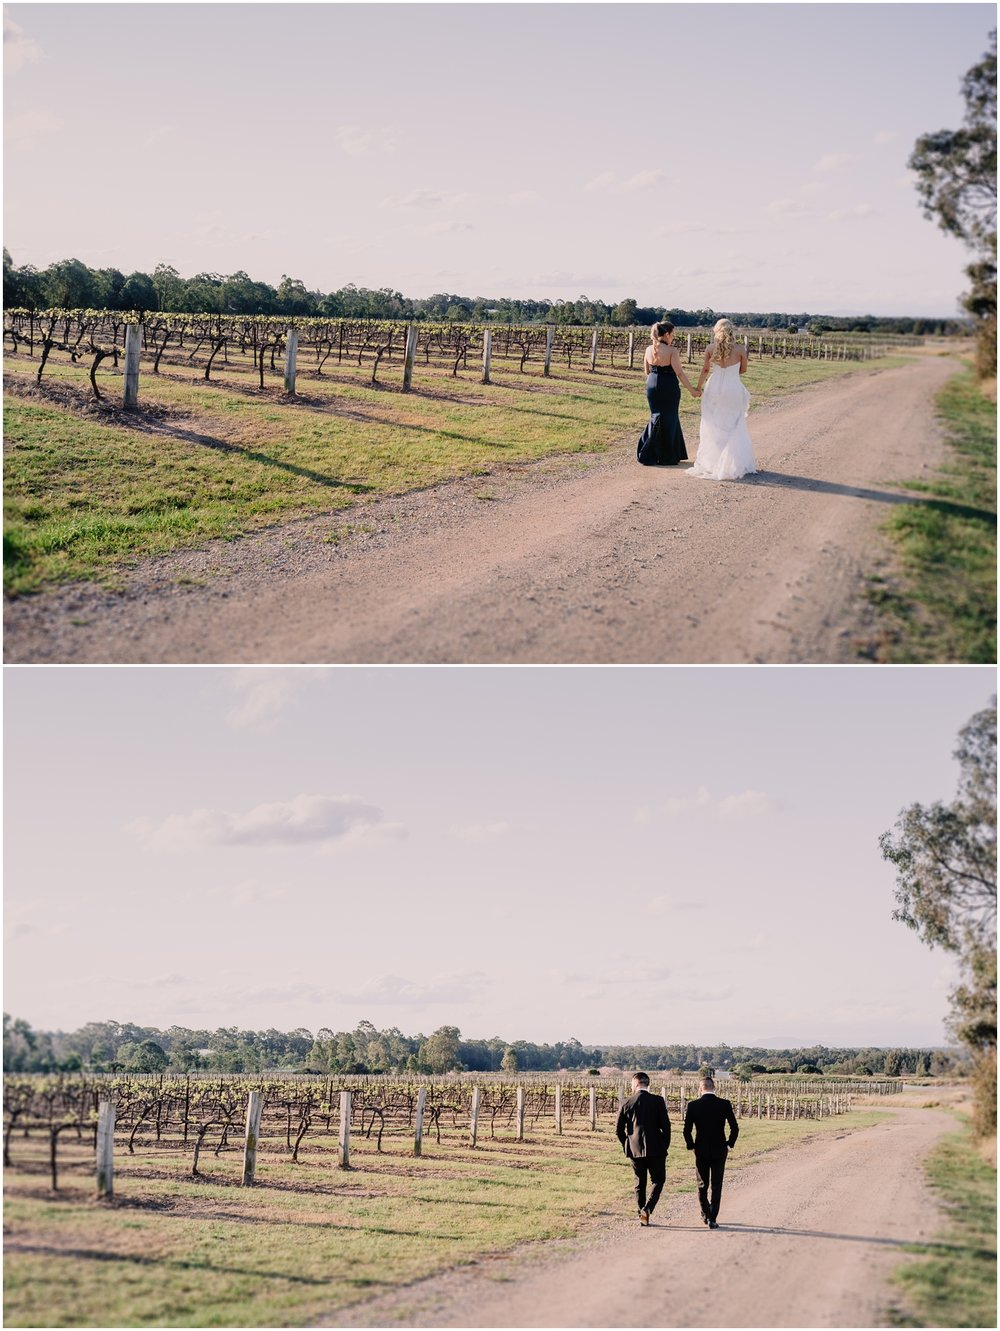 Leogate Estate Wines Wedding + Pokolbin Wedding Photographer + Louise and Daniel_0033.jpg